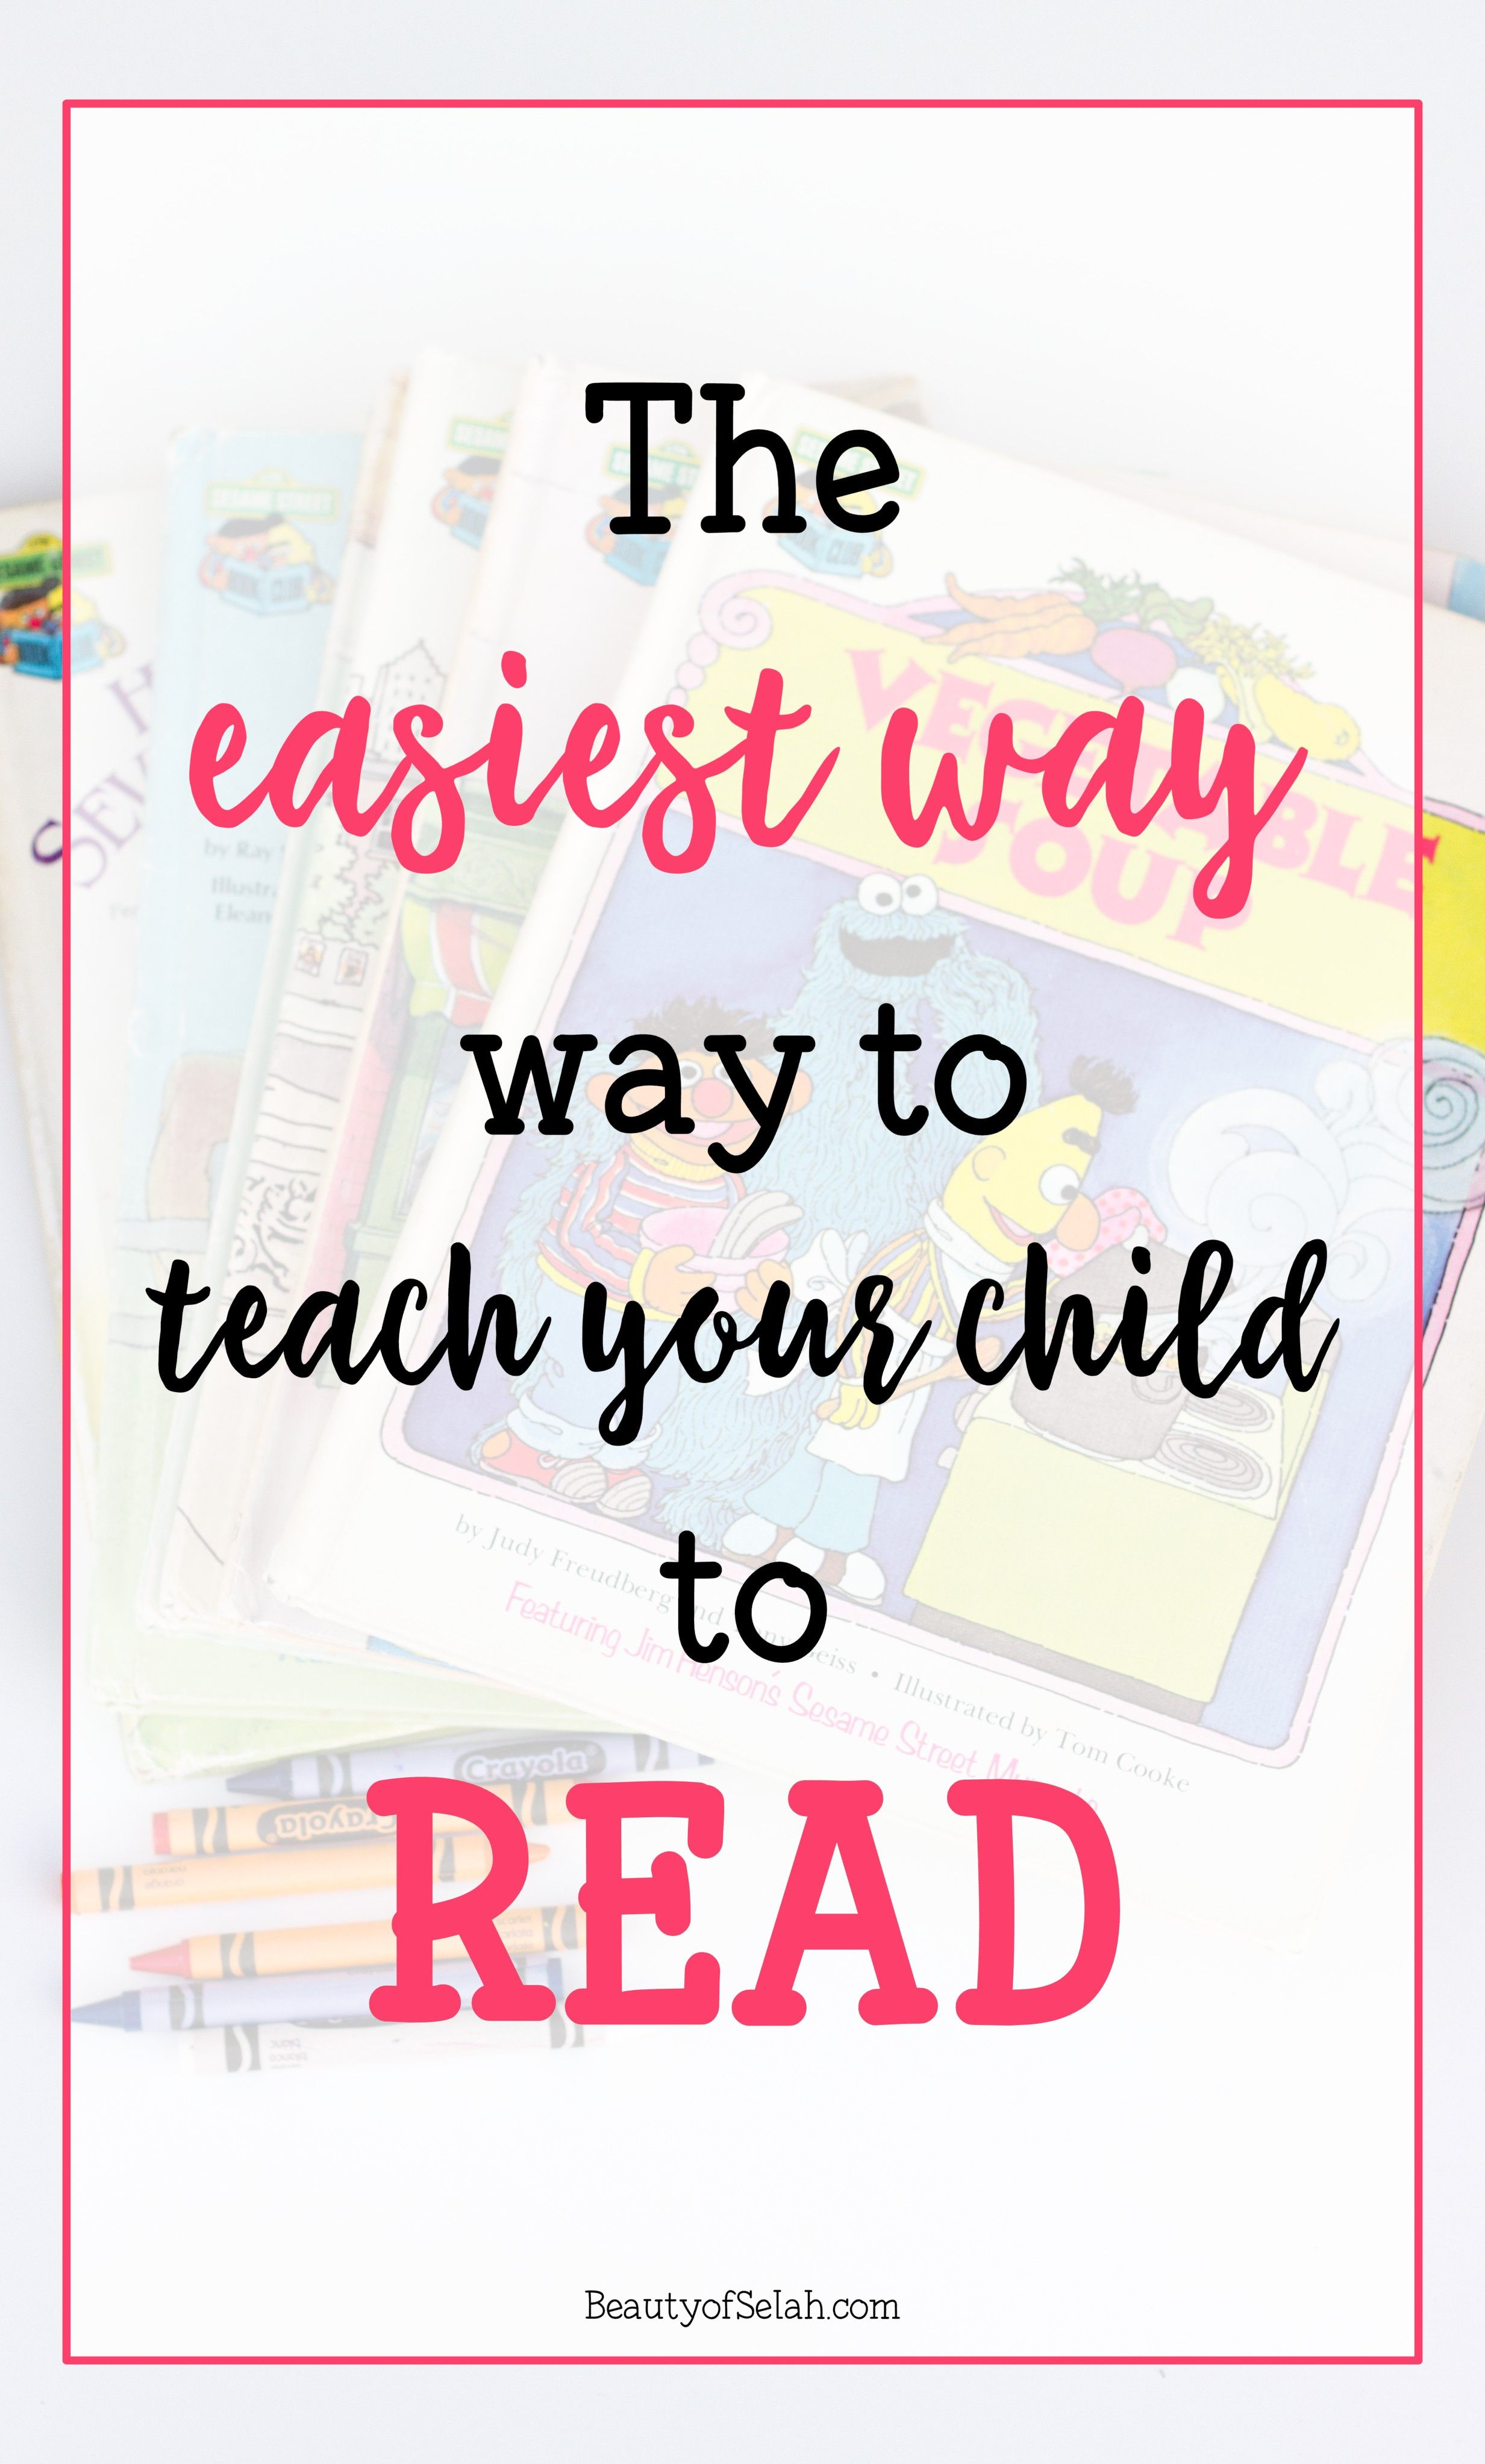 The Most Simple Easy Fast Way To Teach Your Child To Read Teaching Child To Read Learn To Read Books Teaching How to teach to read child